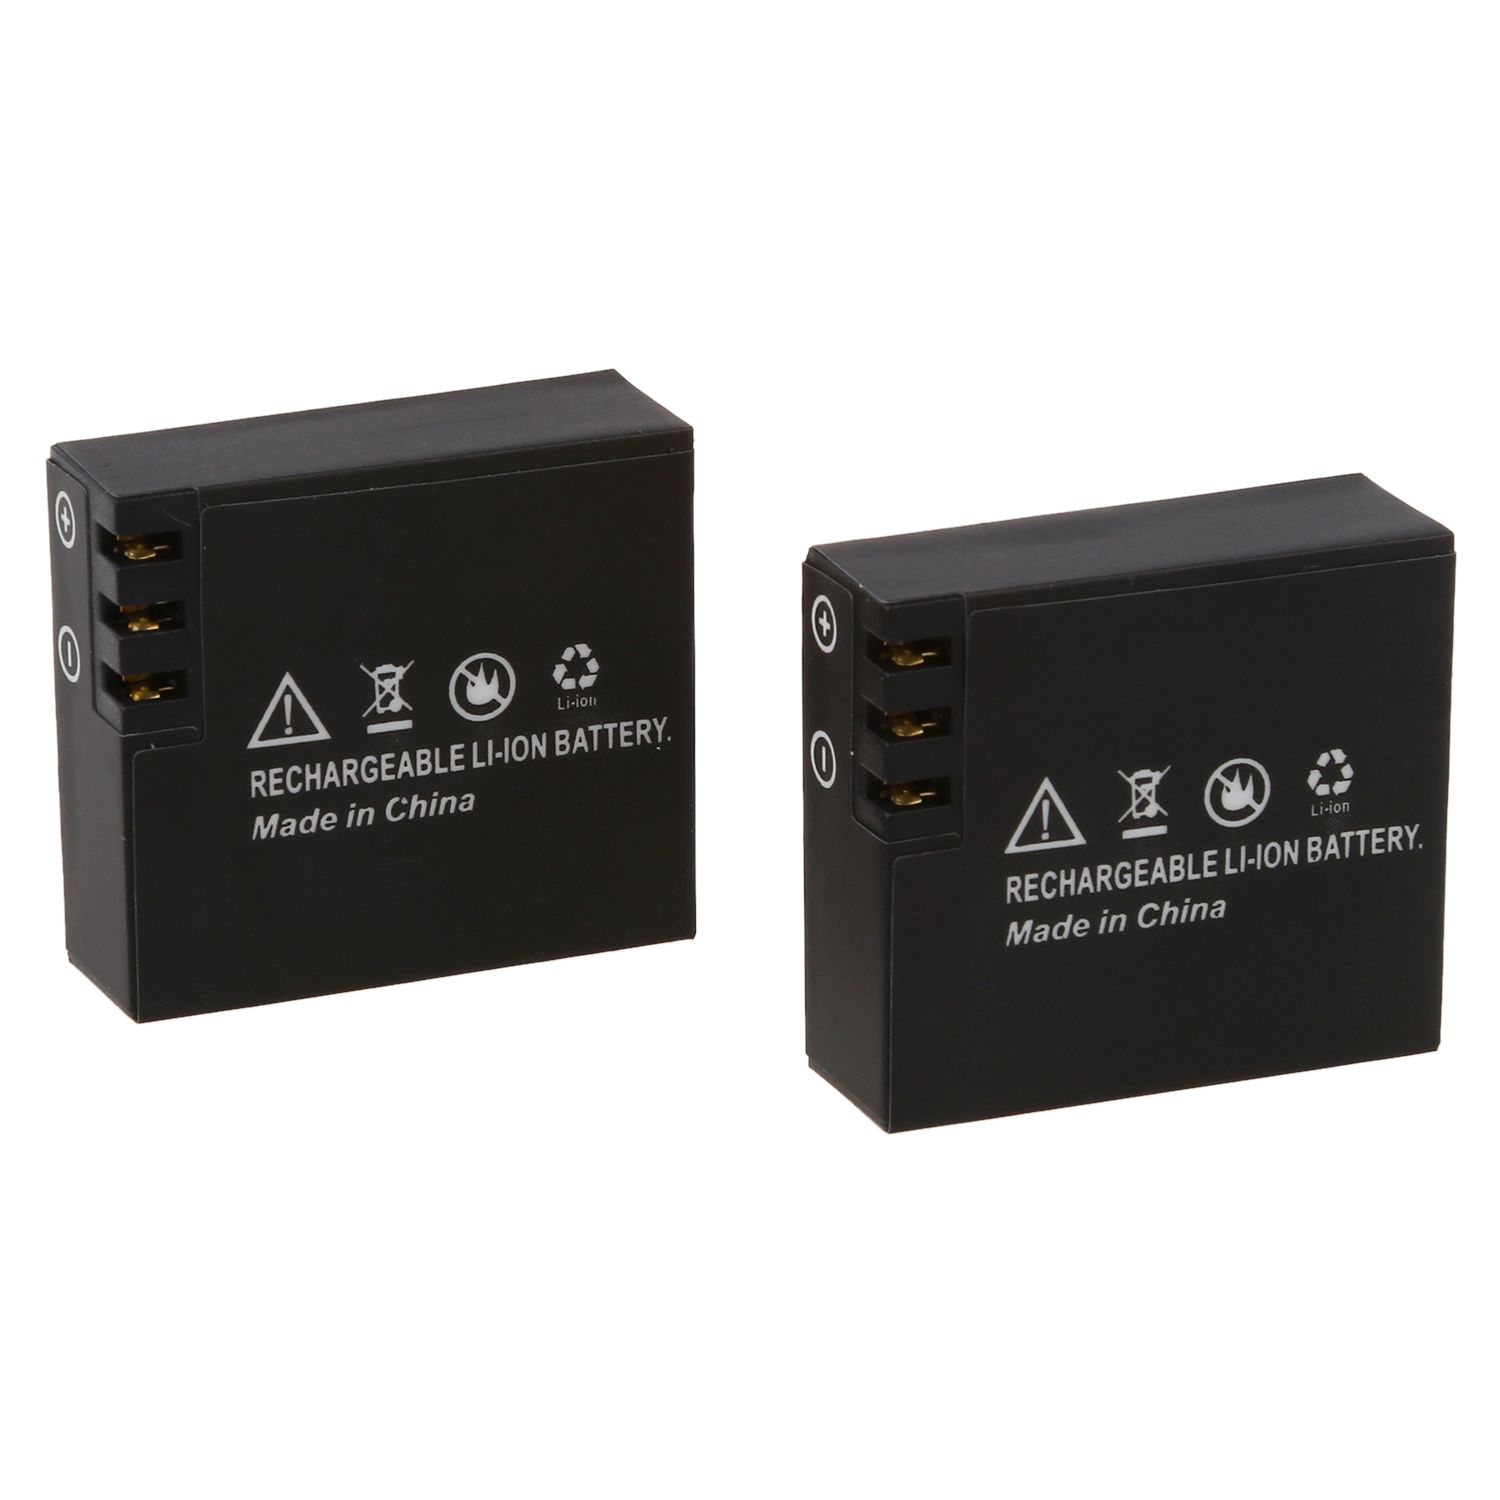 2x900mAh Updated Li-ion Battery For SJCAM SJ4000 SJ6000 SJ5000 Wifi SJ5000+